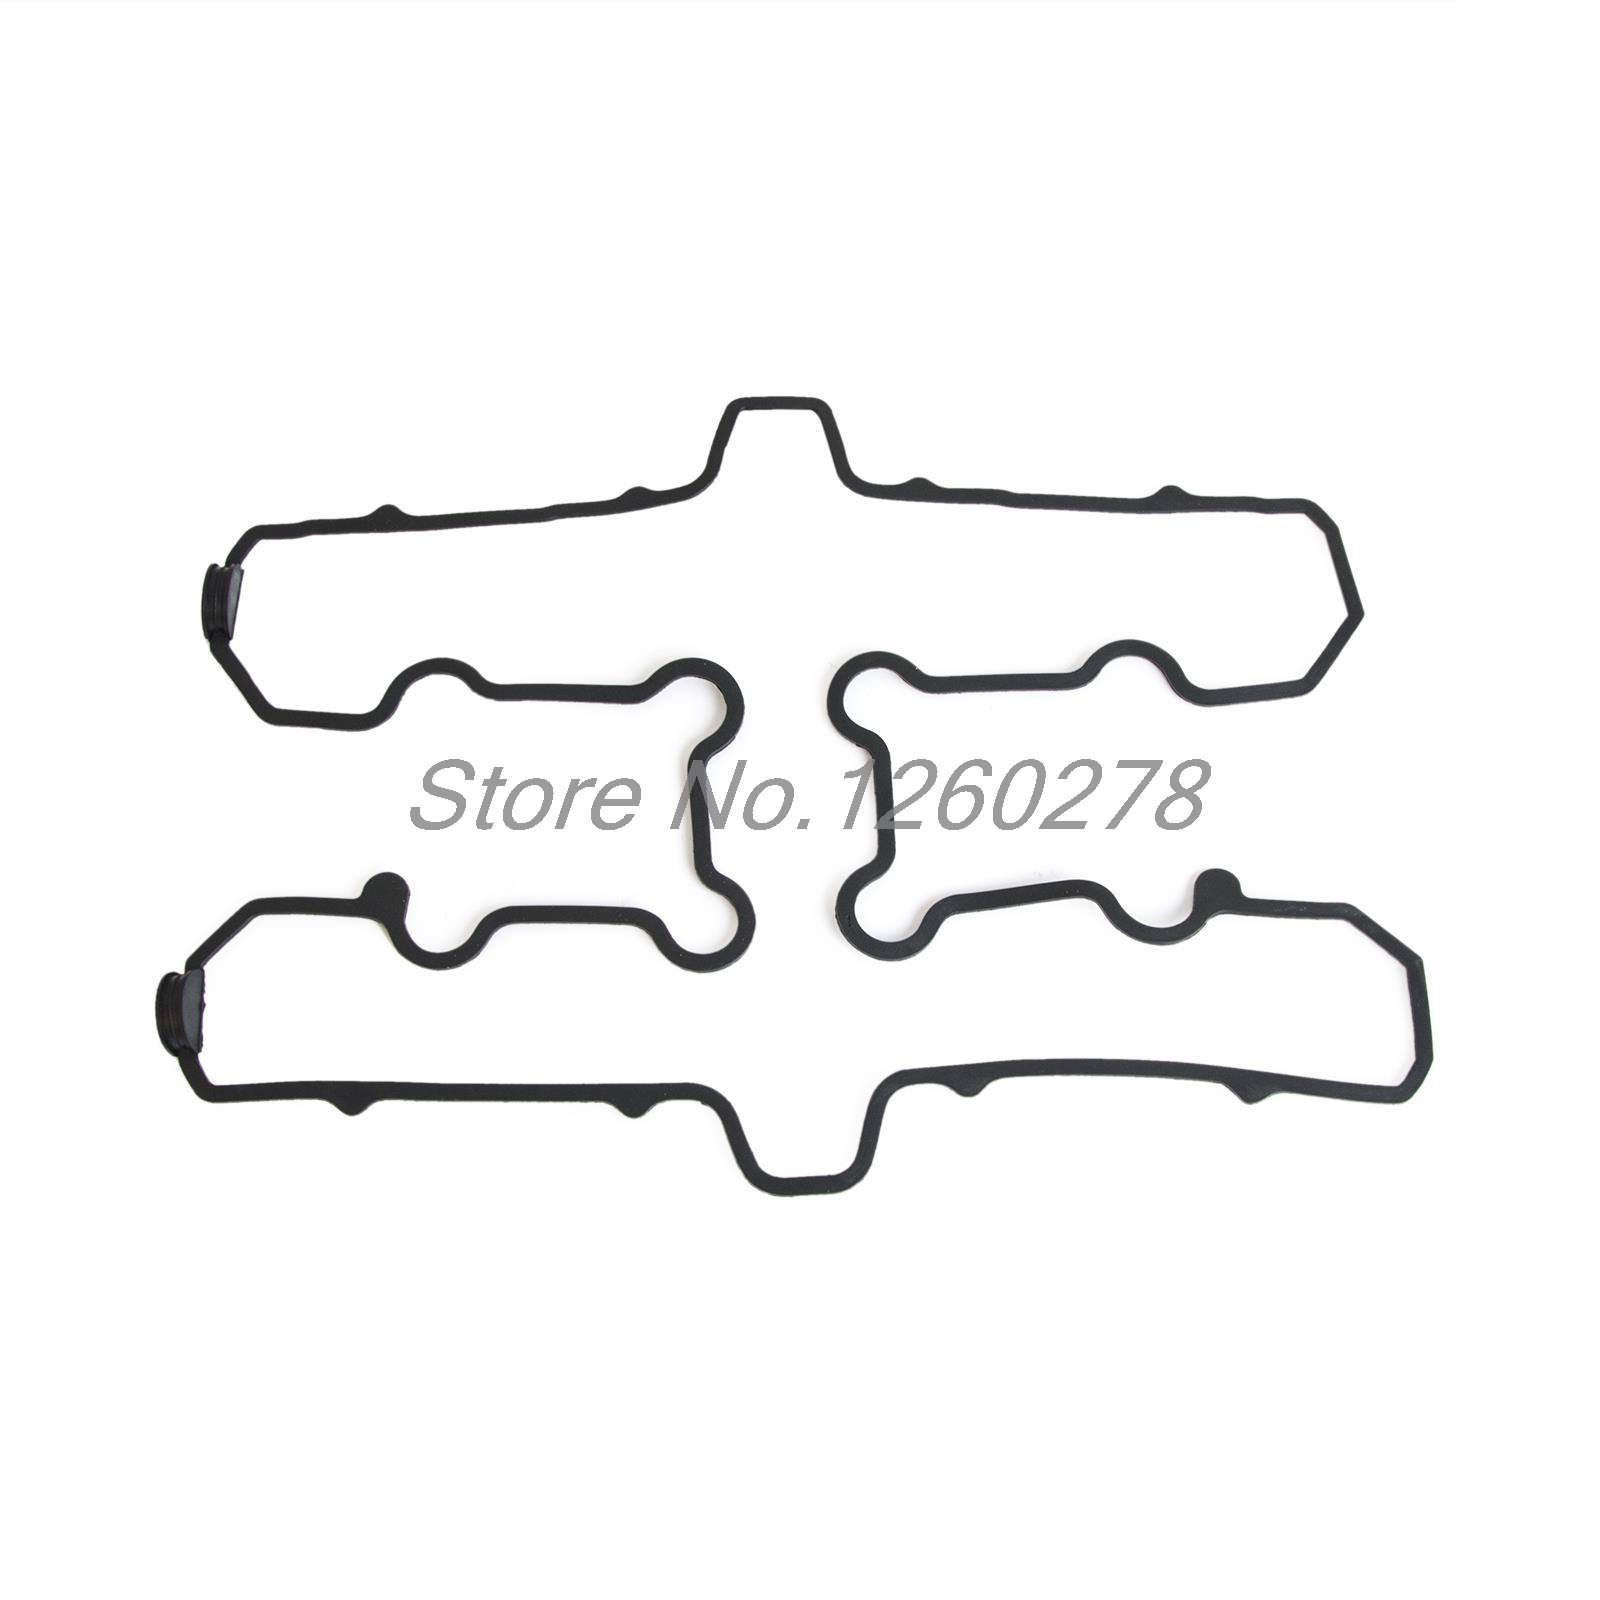 Cylinder Head Cover Gasket for Yamaha FJ1100 FJ1200